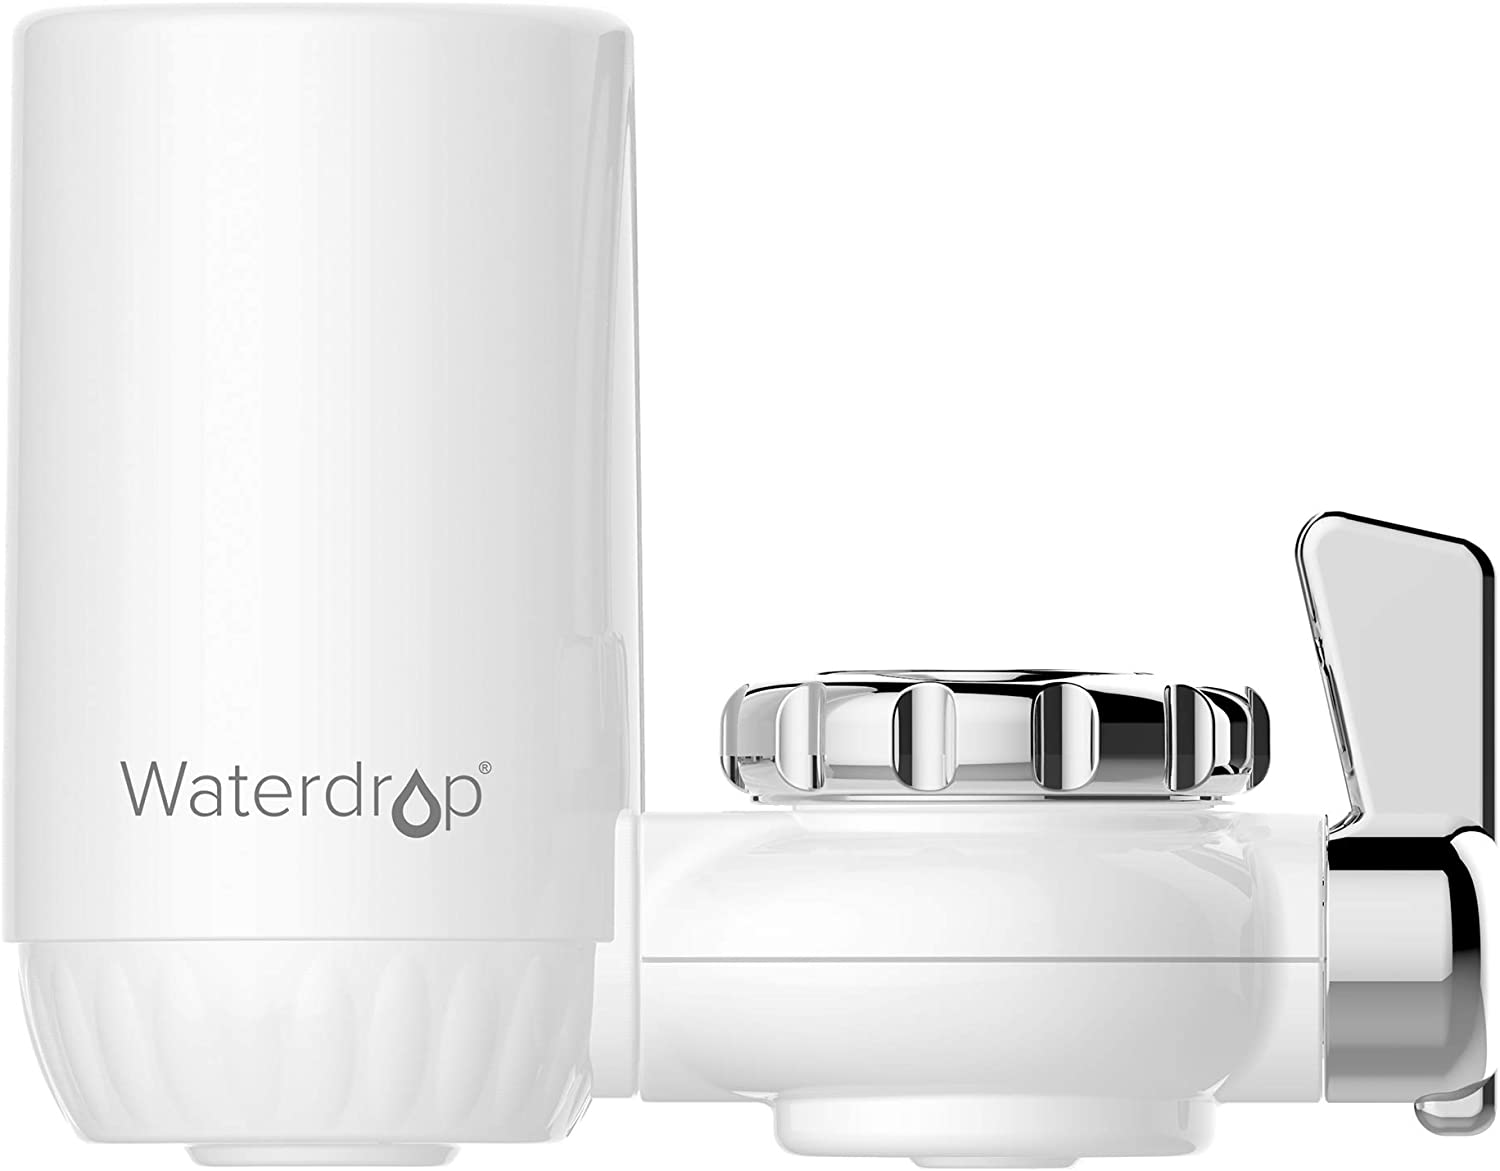 Waterdrop NSF Certified Long-Lasting Faucet Filtration System, Tap Water Filter with Ultra Adsorptive Material, removes 93% Chlorine, Lead, Flouride and More - Fits Standard Faucets, 1 Filter Included